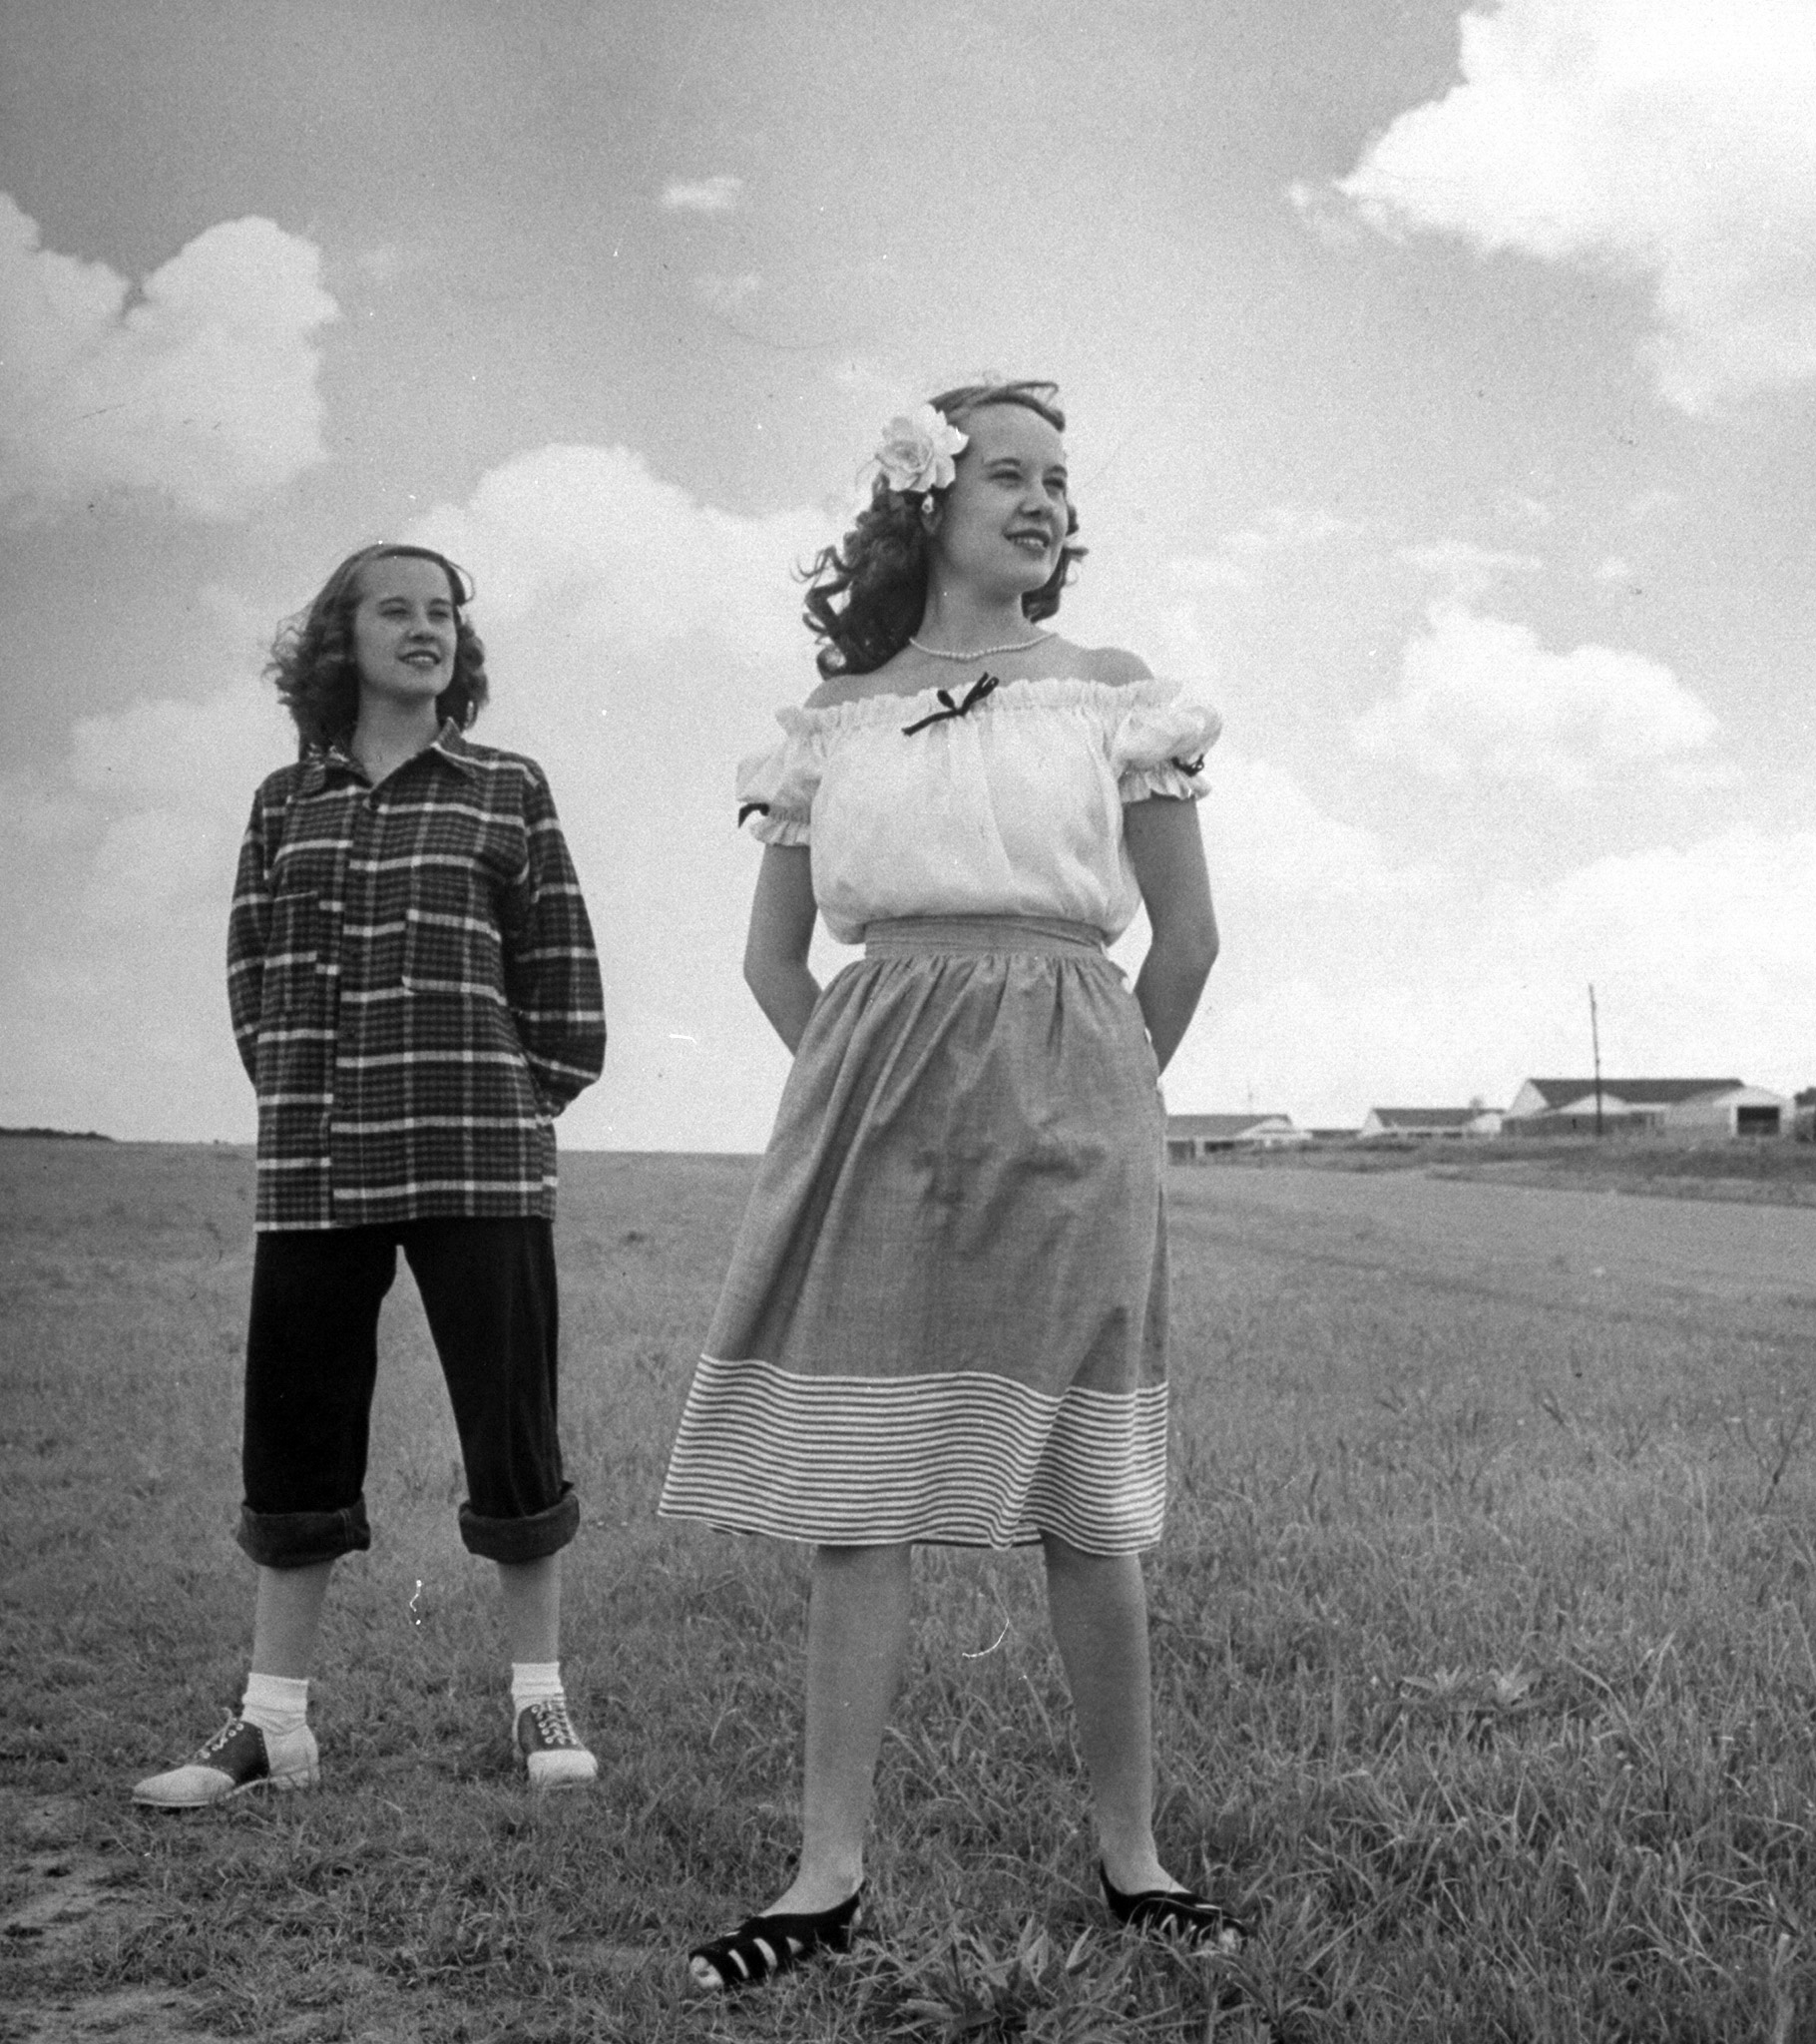 <b>Caption from LIFE.</b> Contrasts in teen-age clothes are shown by Betty Bounds (right), wearing a dainty 1947 outfit, while Barbara poses in sloppy get-up.